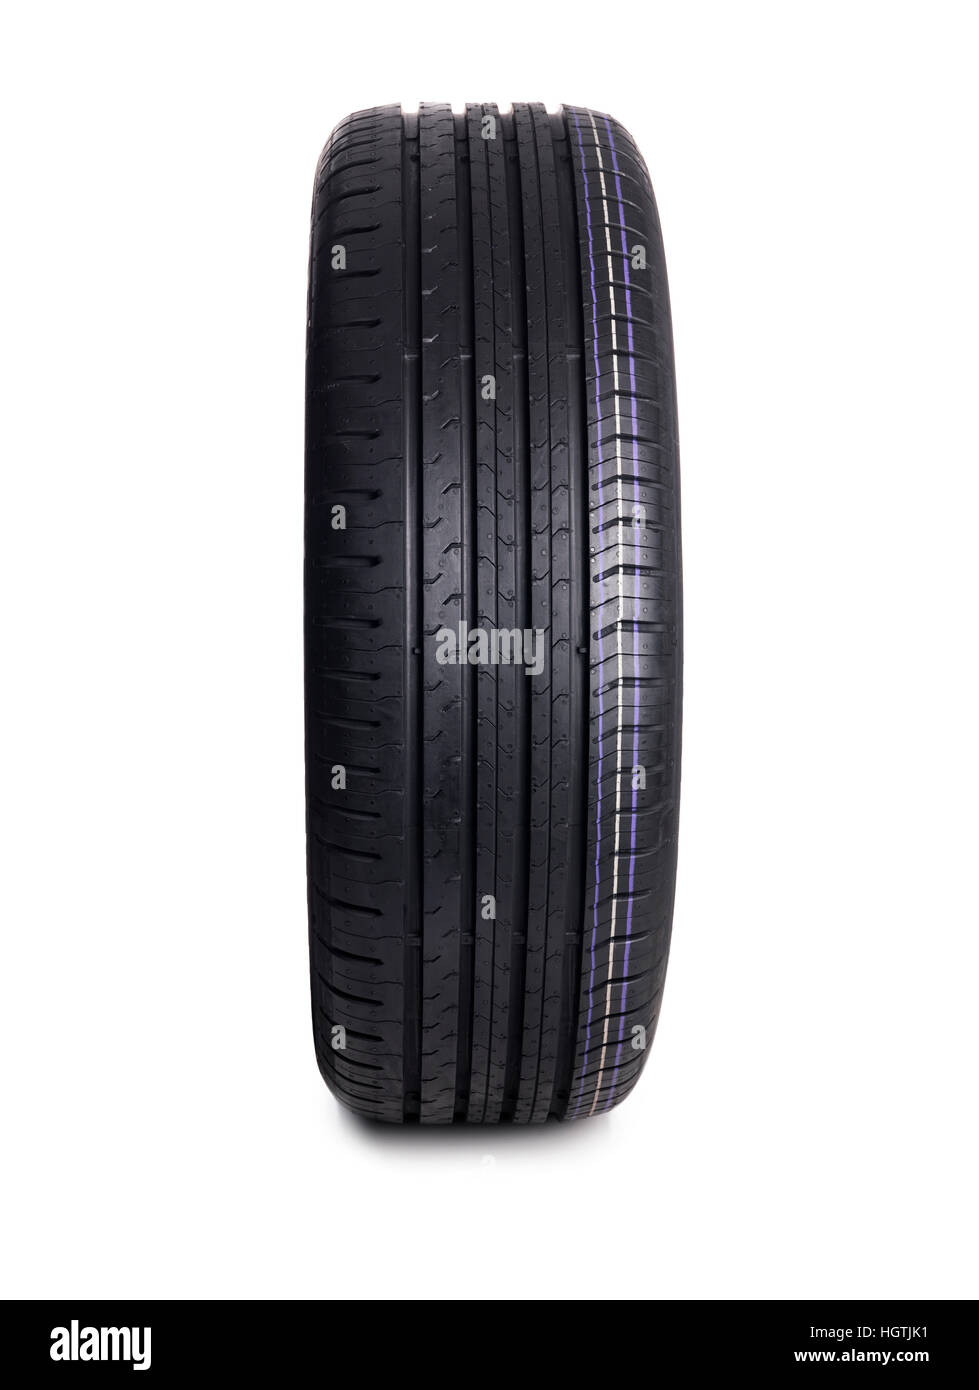 Car Tire isolated on white - Stock Image